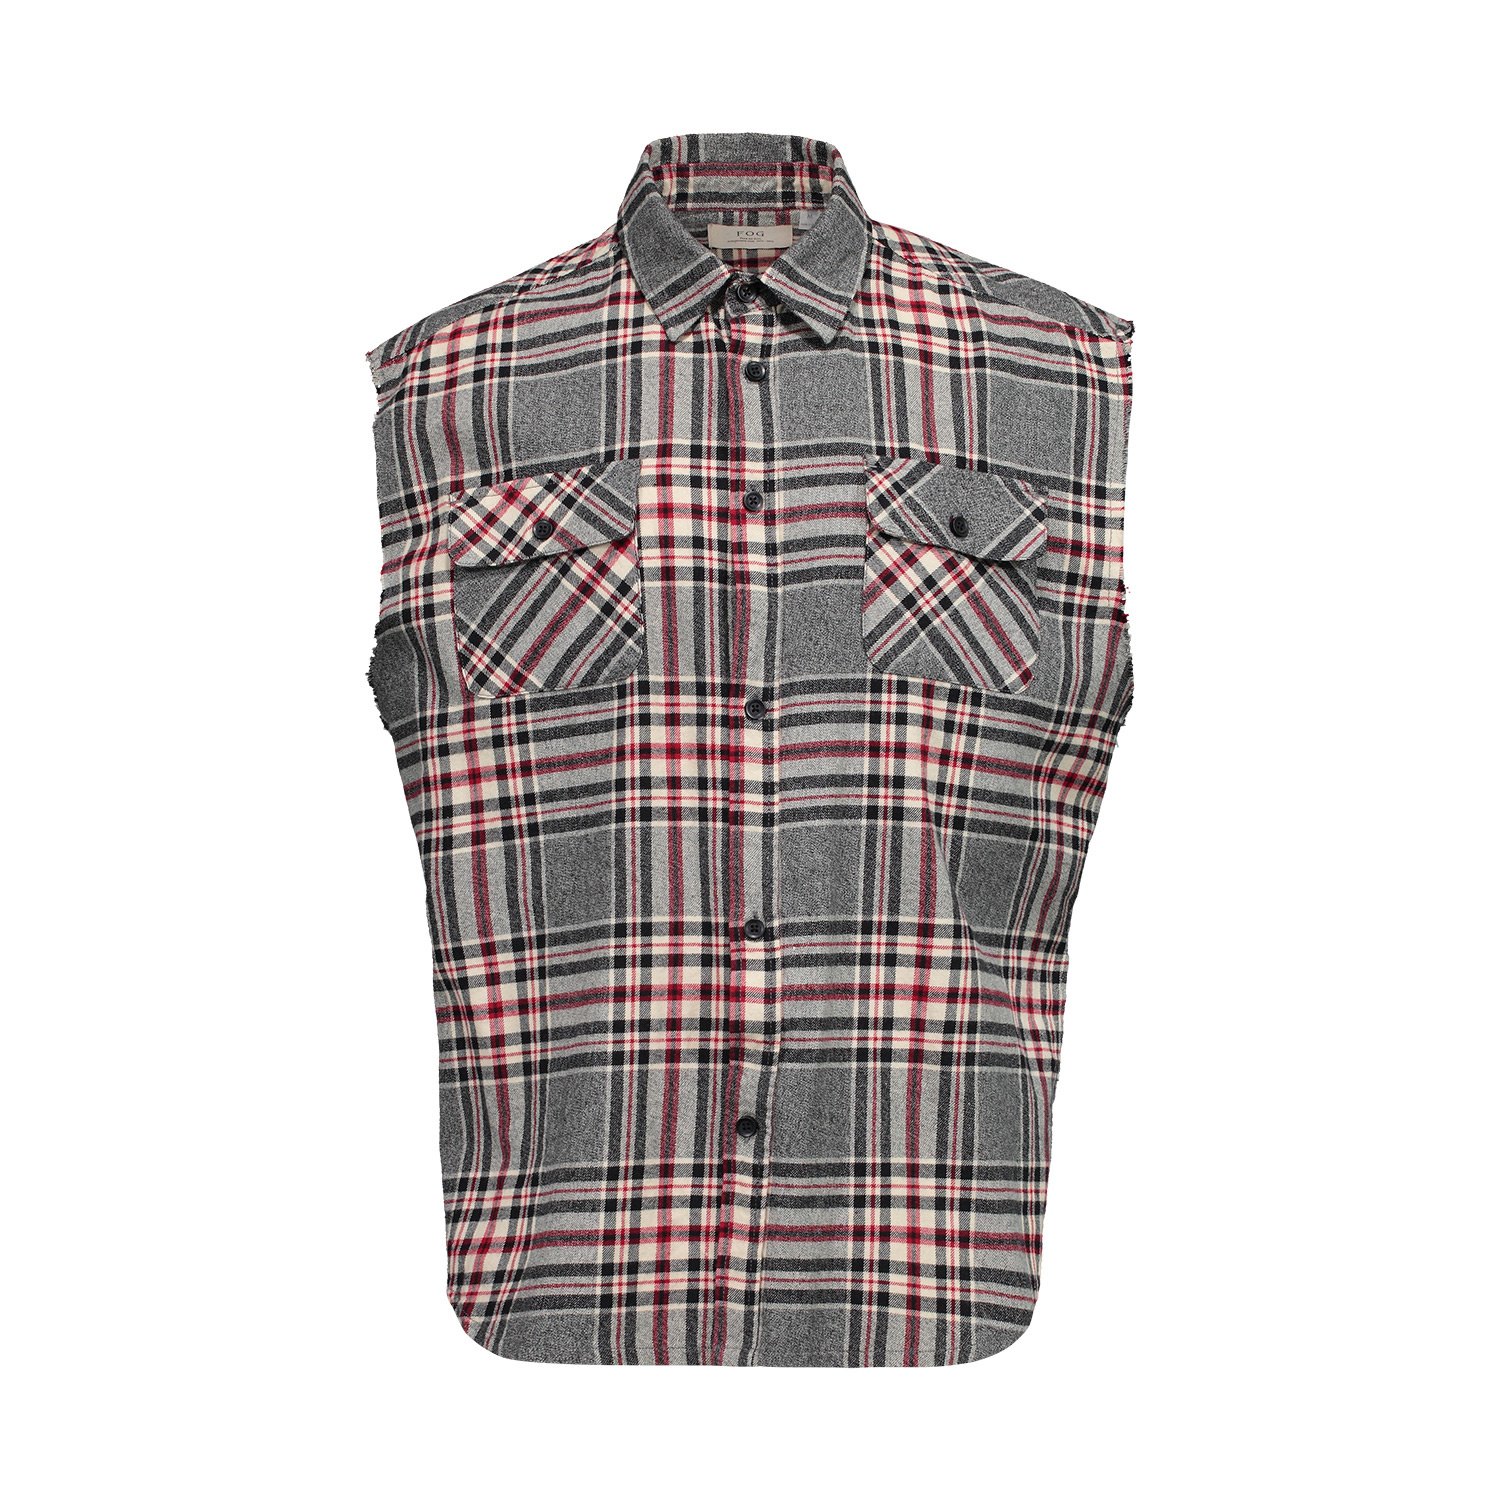 aa2f705c6473 Fear of God Collection One Sleeveless Flannel Shirt - Boutique LUC.S